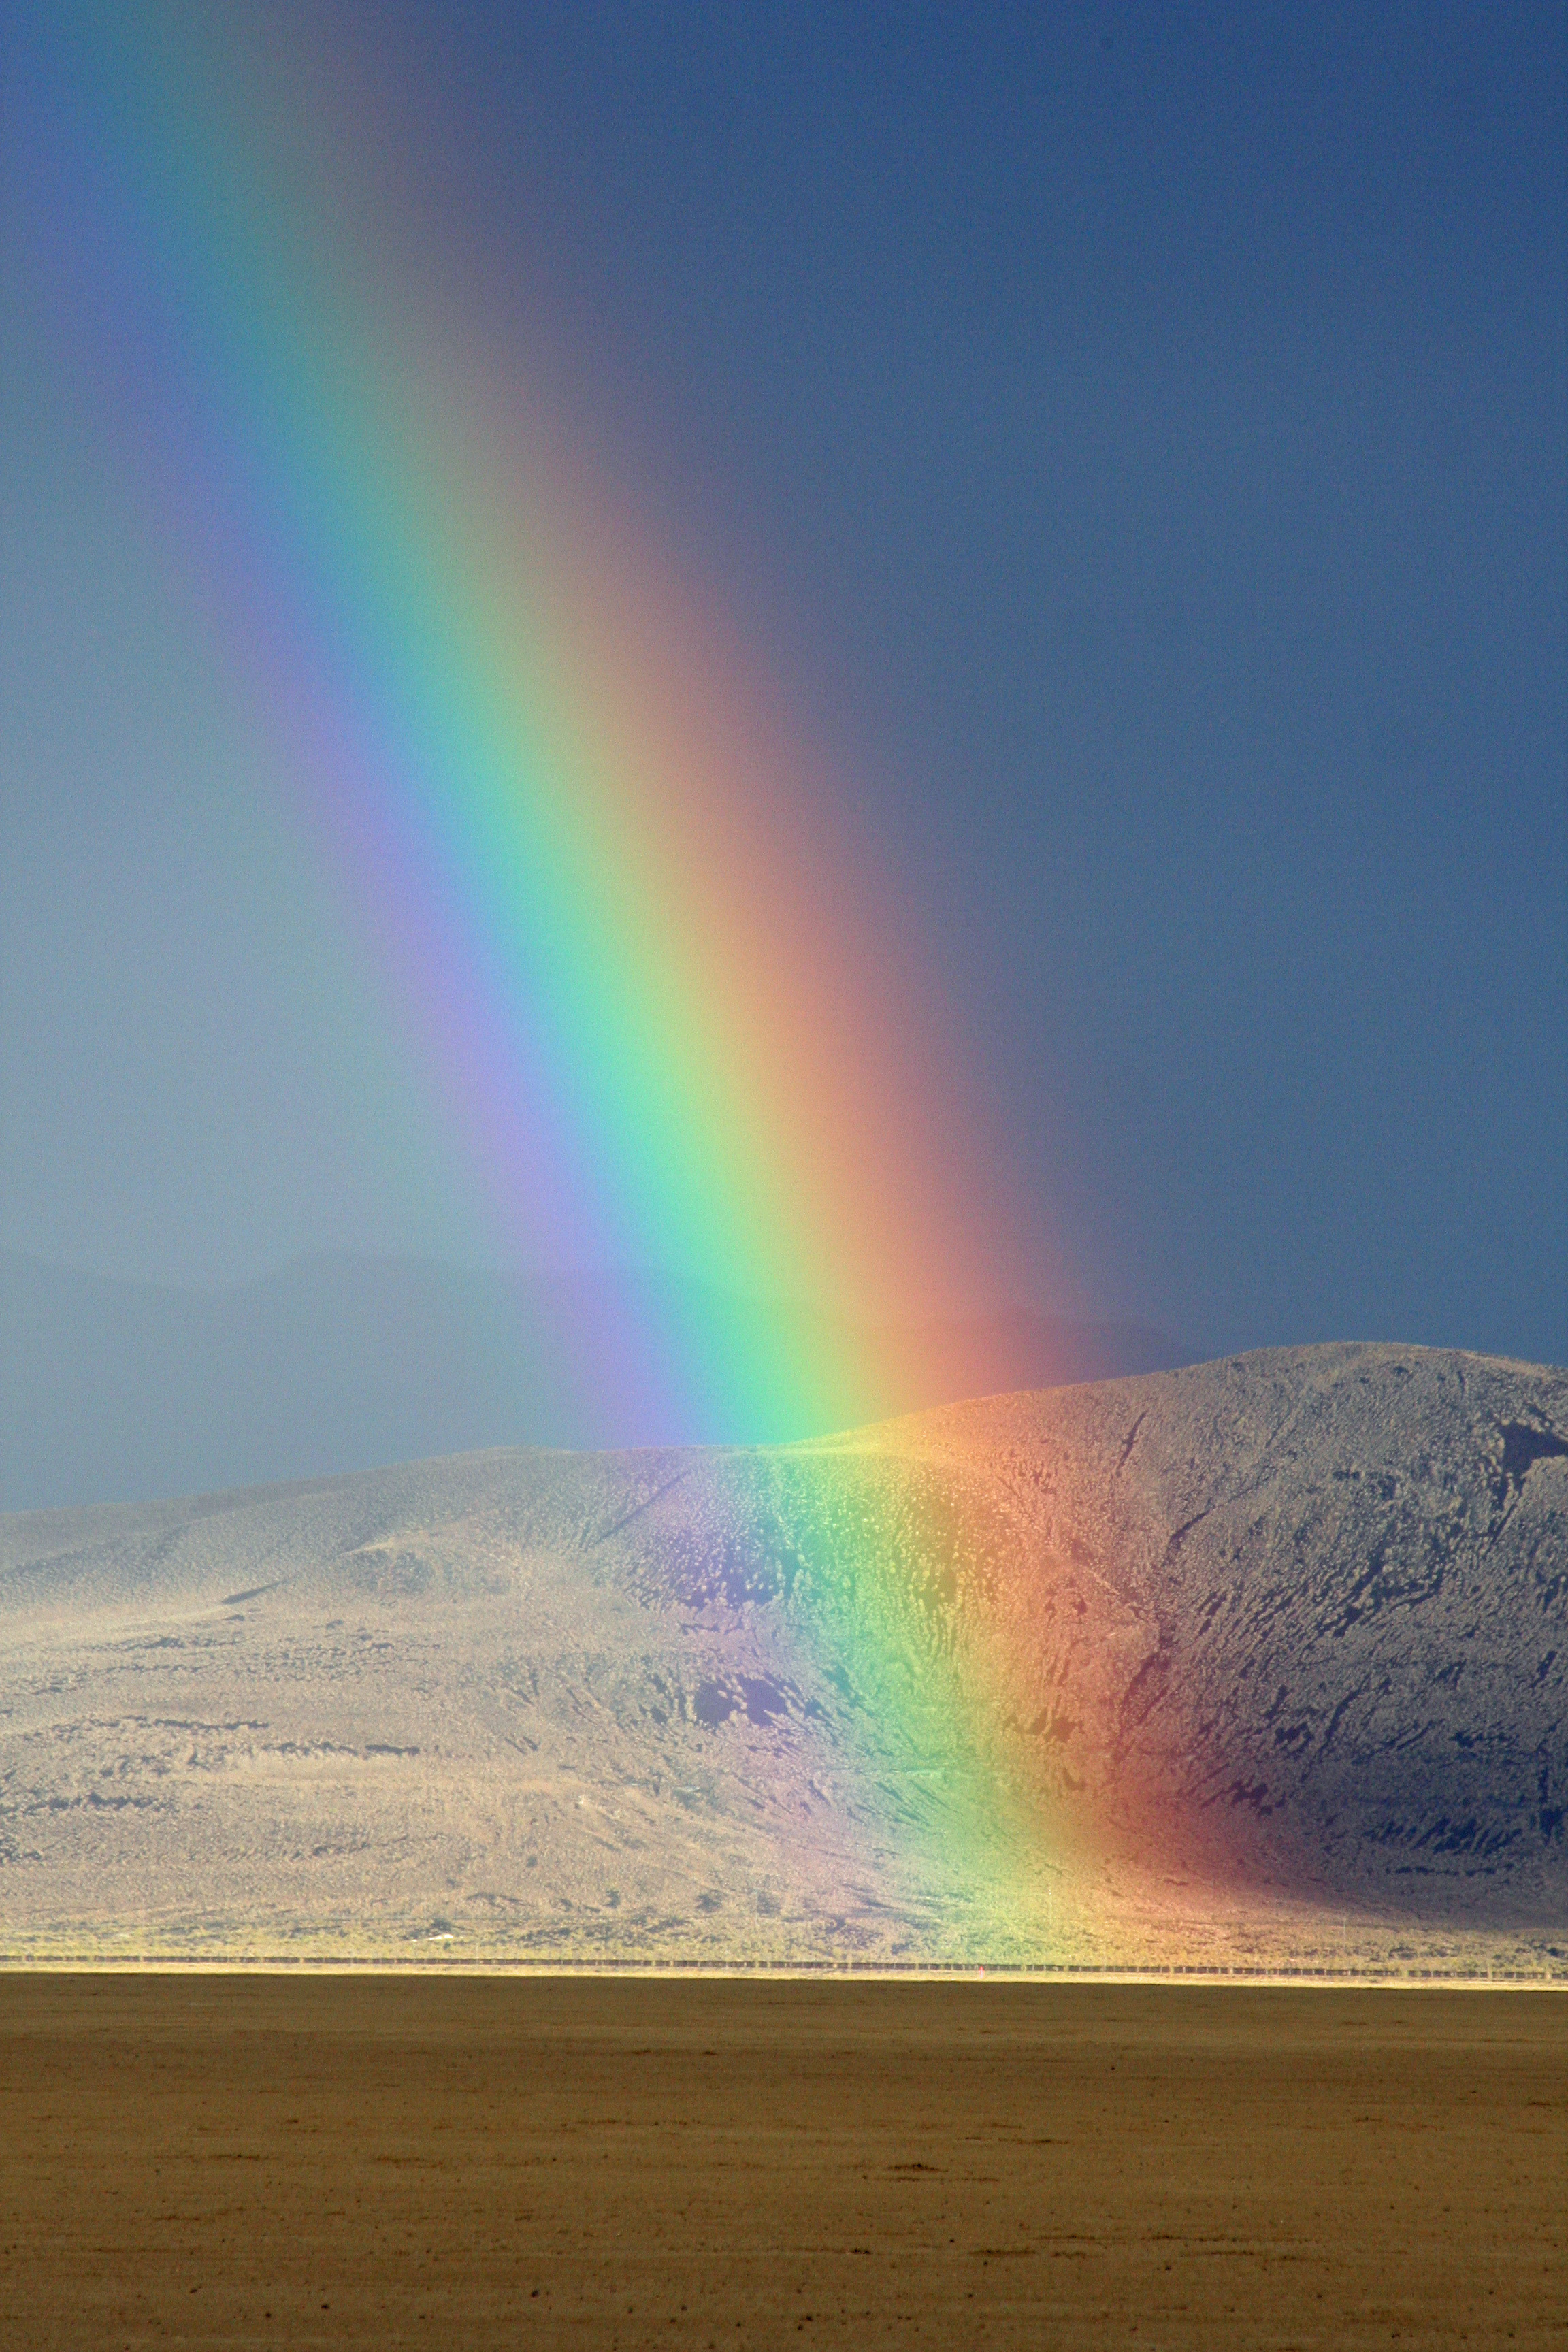 But the desert also has great beauty, as this rainbow at Burning Man demonstrates.